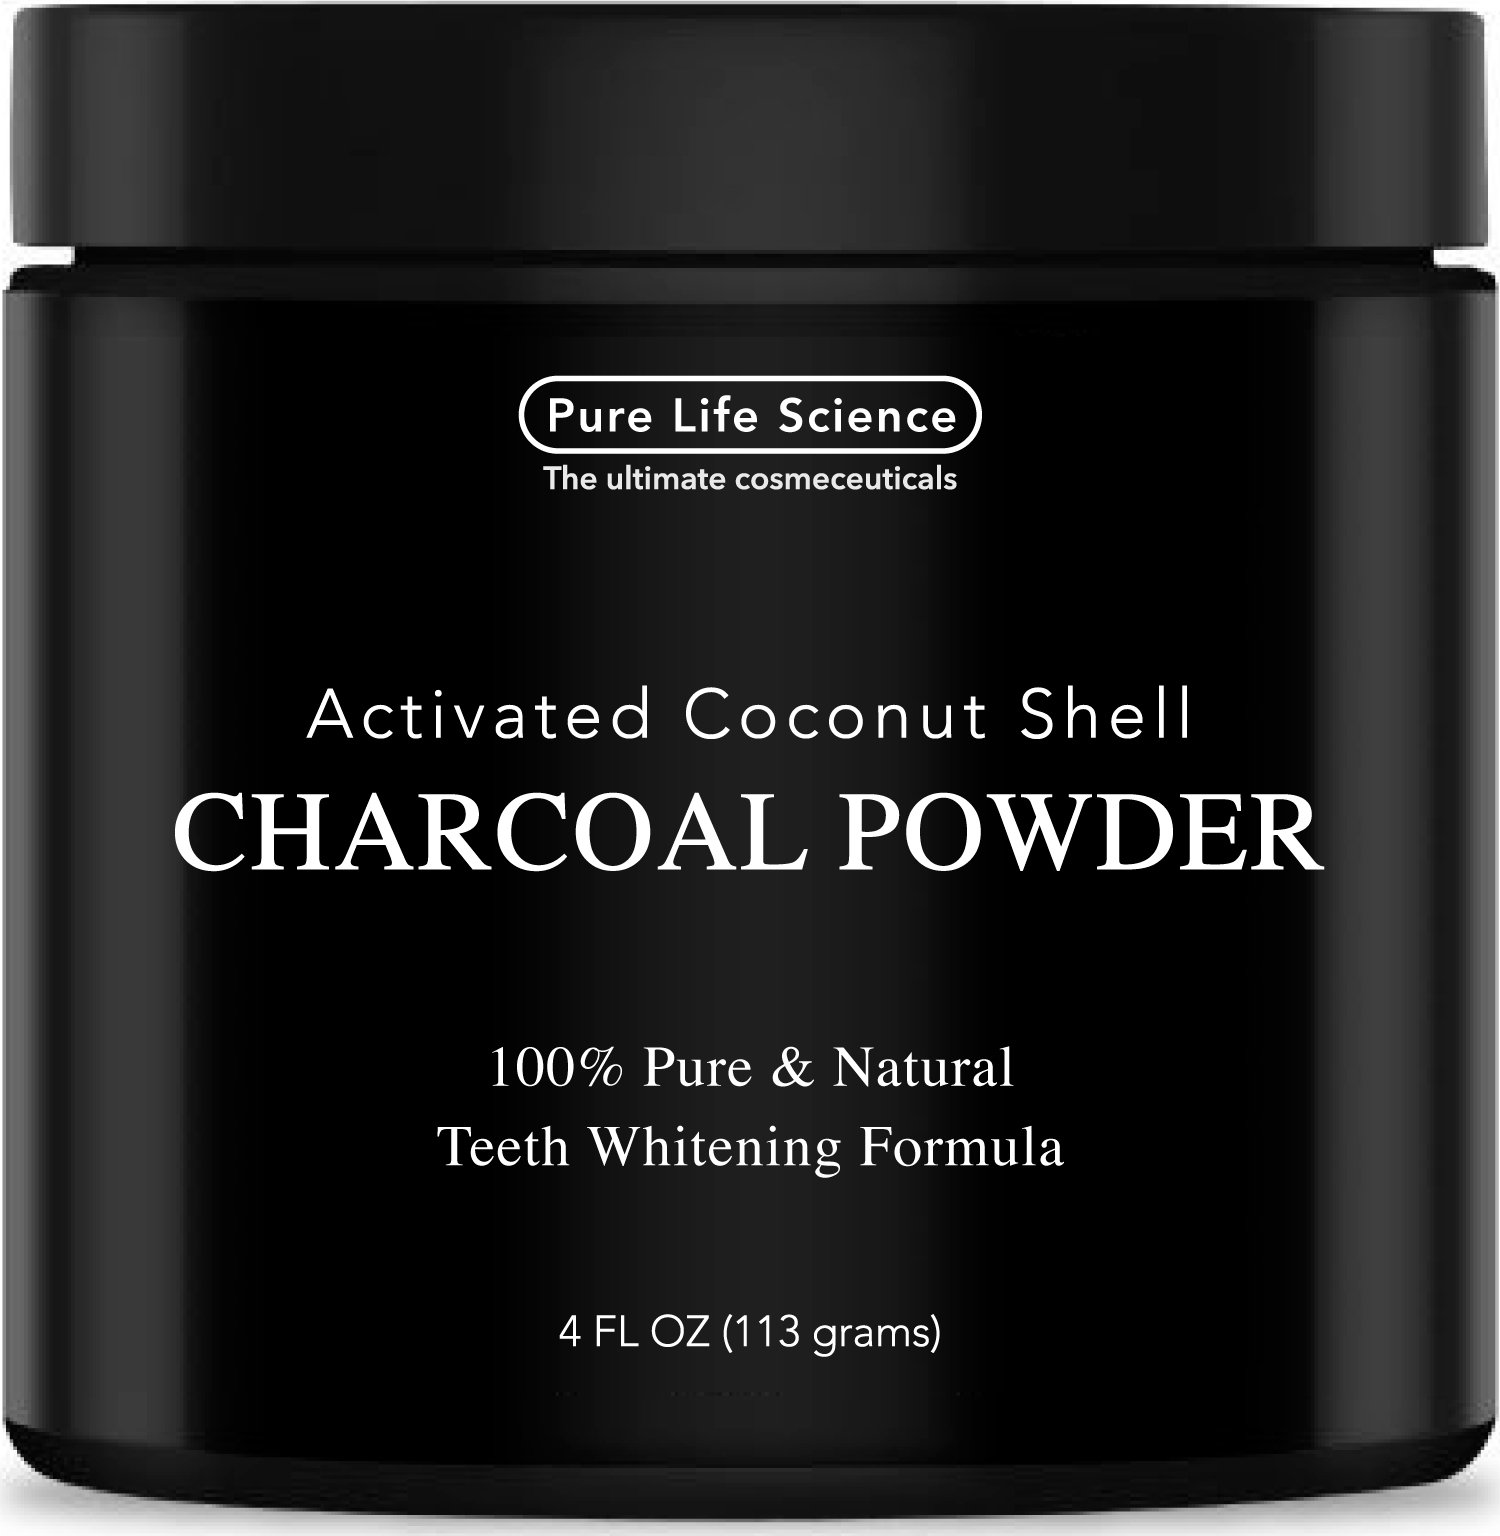 100% Pure Teeth Whitening Activated Charcoal Powder – HUGE 4OZ – Guaranteed to Brighten Teeth Up to 8 Shades Lighter